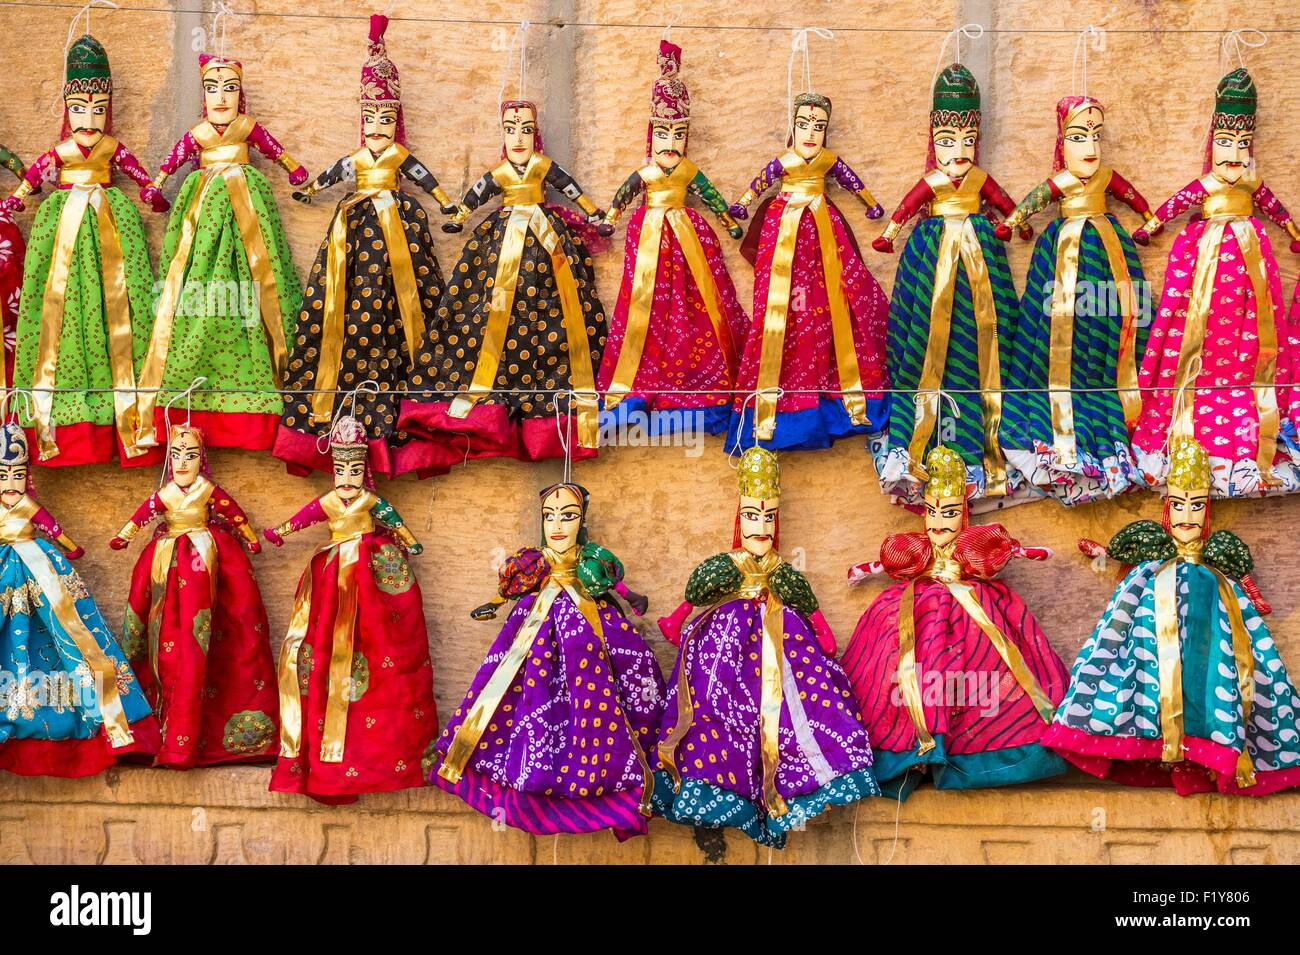 India, Rajasthan state, Jaisalmer, selling puppets - Stock Image